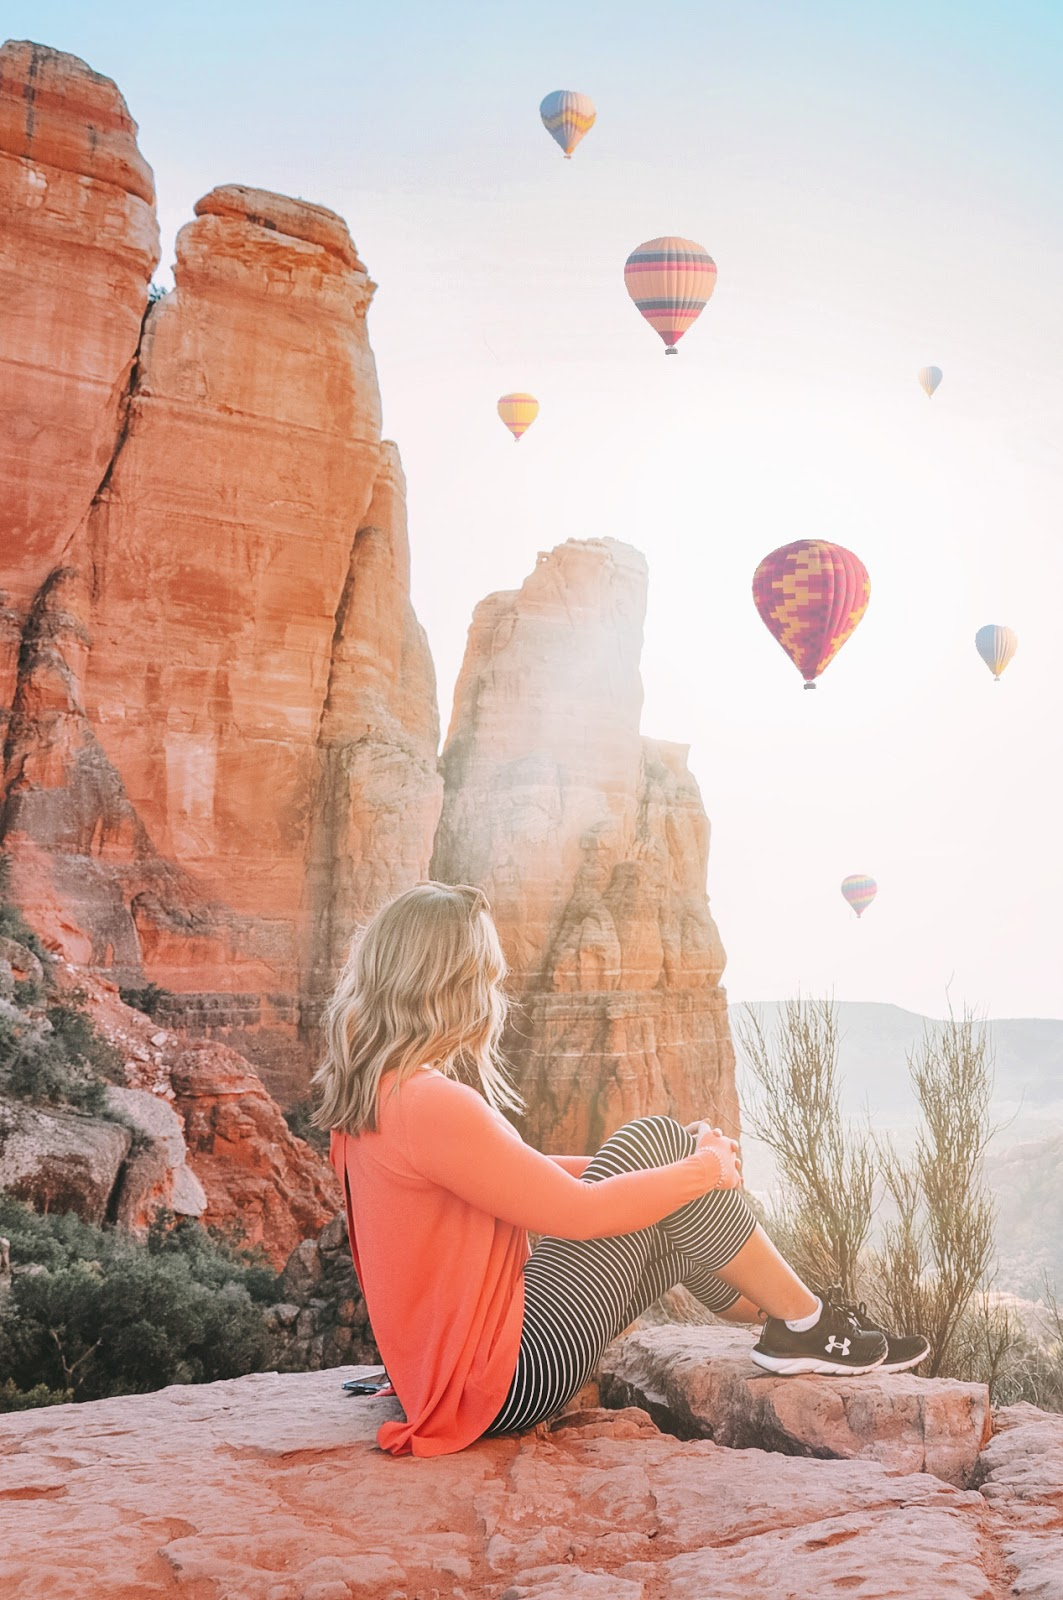 travel blogger Amanda's OK overlooks the Sedona sunset from Cathedral Rock